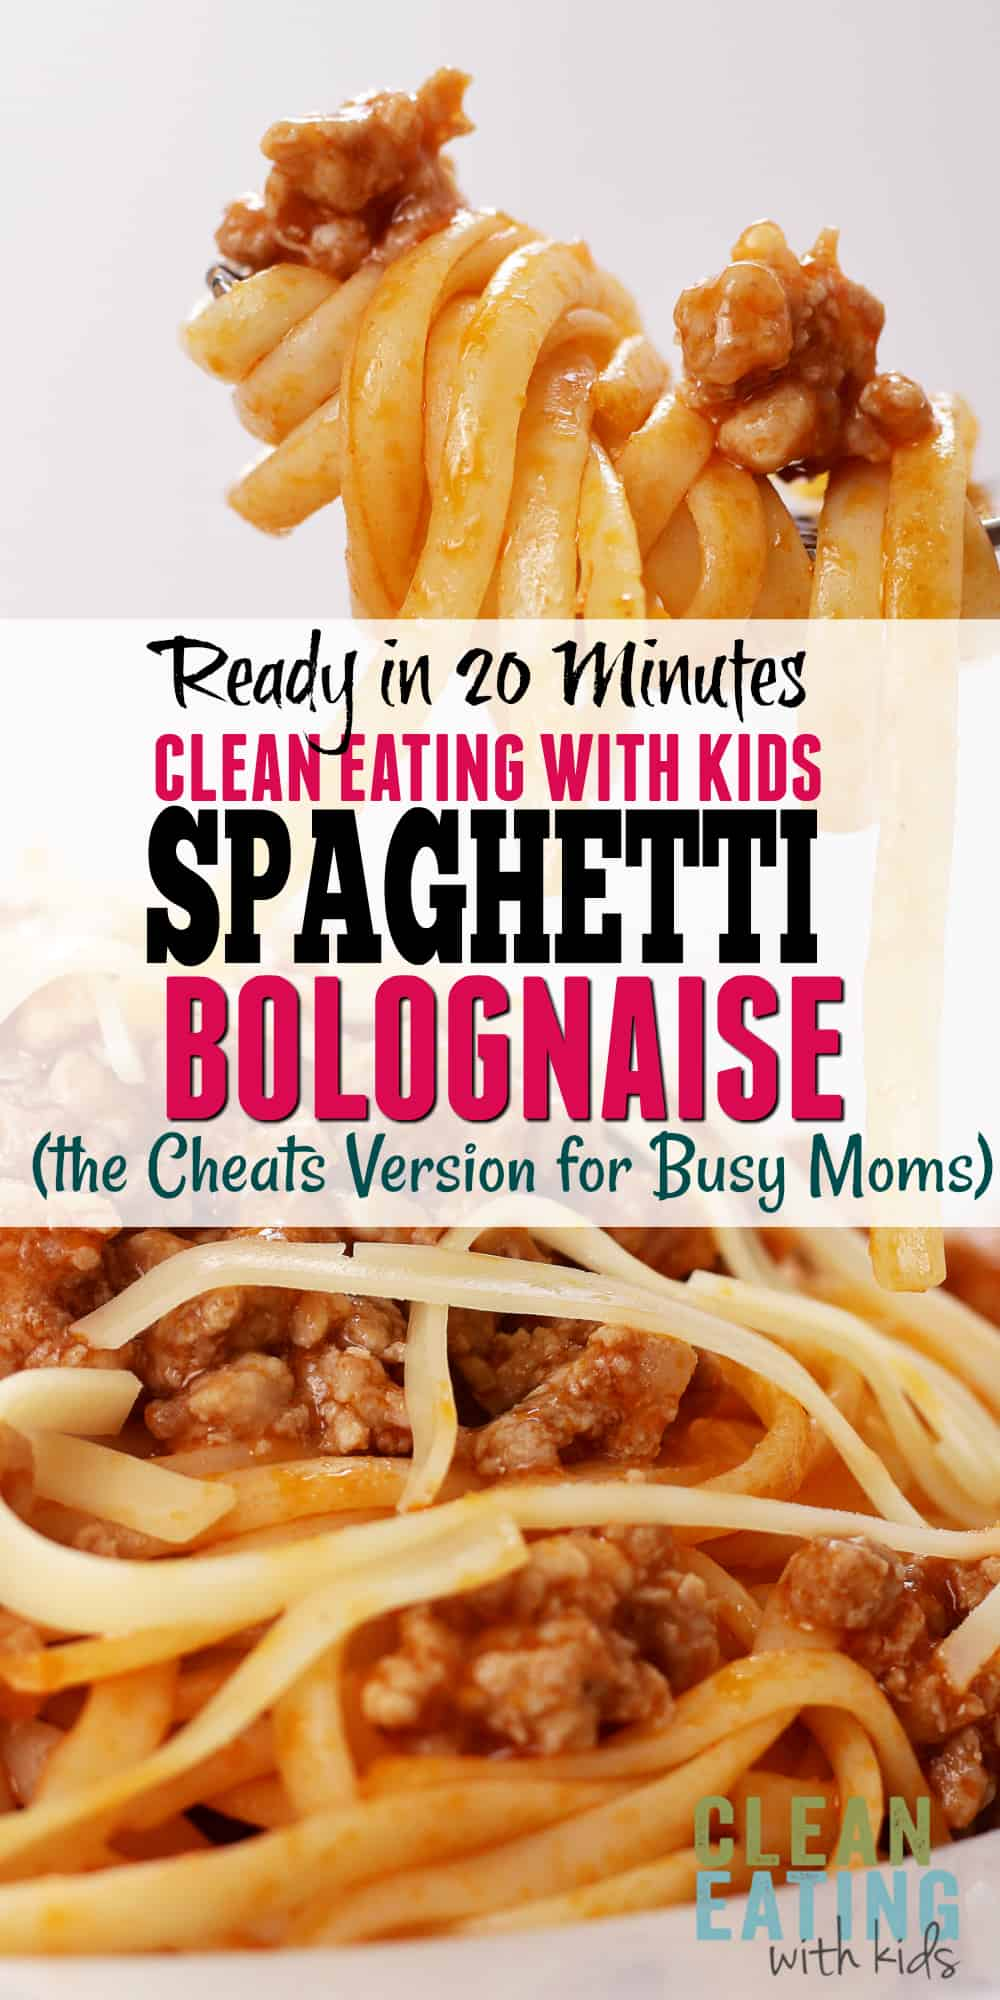 Quick and Easy CLEAN EATING Spaghetti Bolognaise. The Cheats Version for Busy Moms to get on the table in under 30 min!